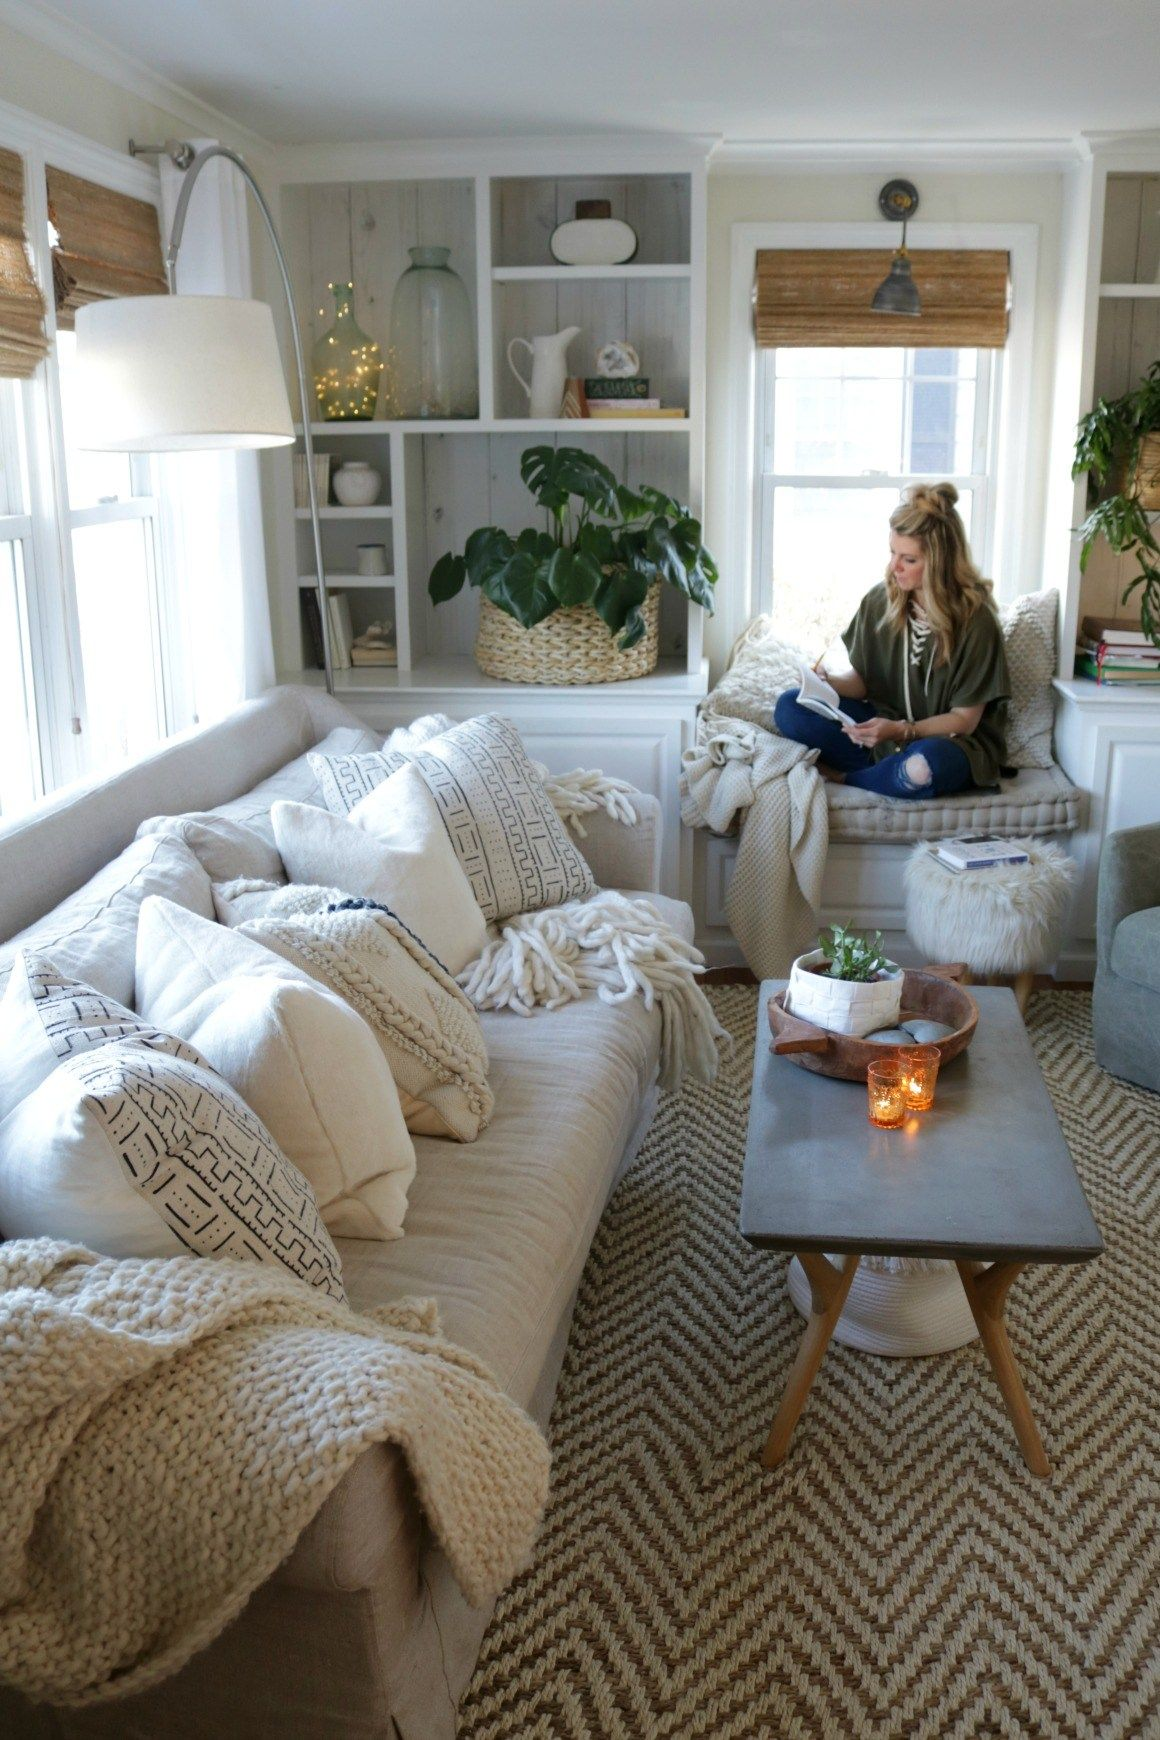 Small Great Room Designs: Friday Favorites Start With The Small Things That Add Up